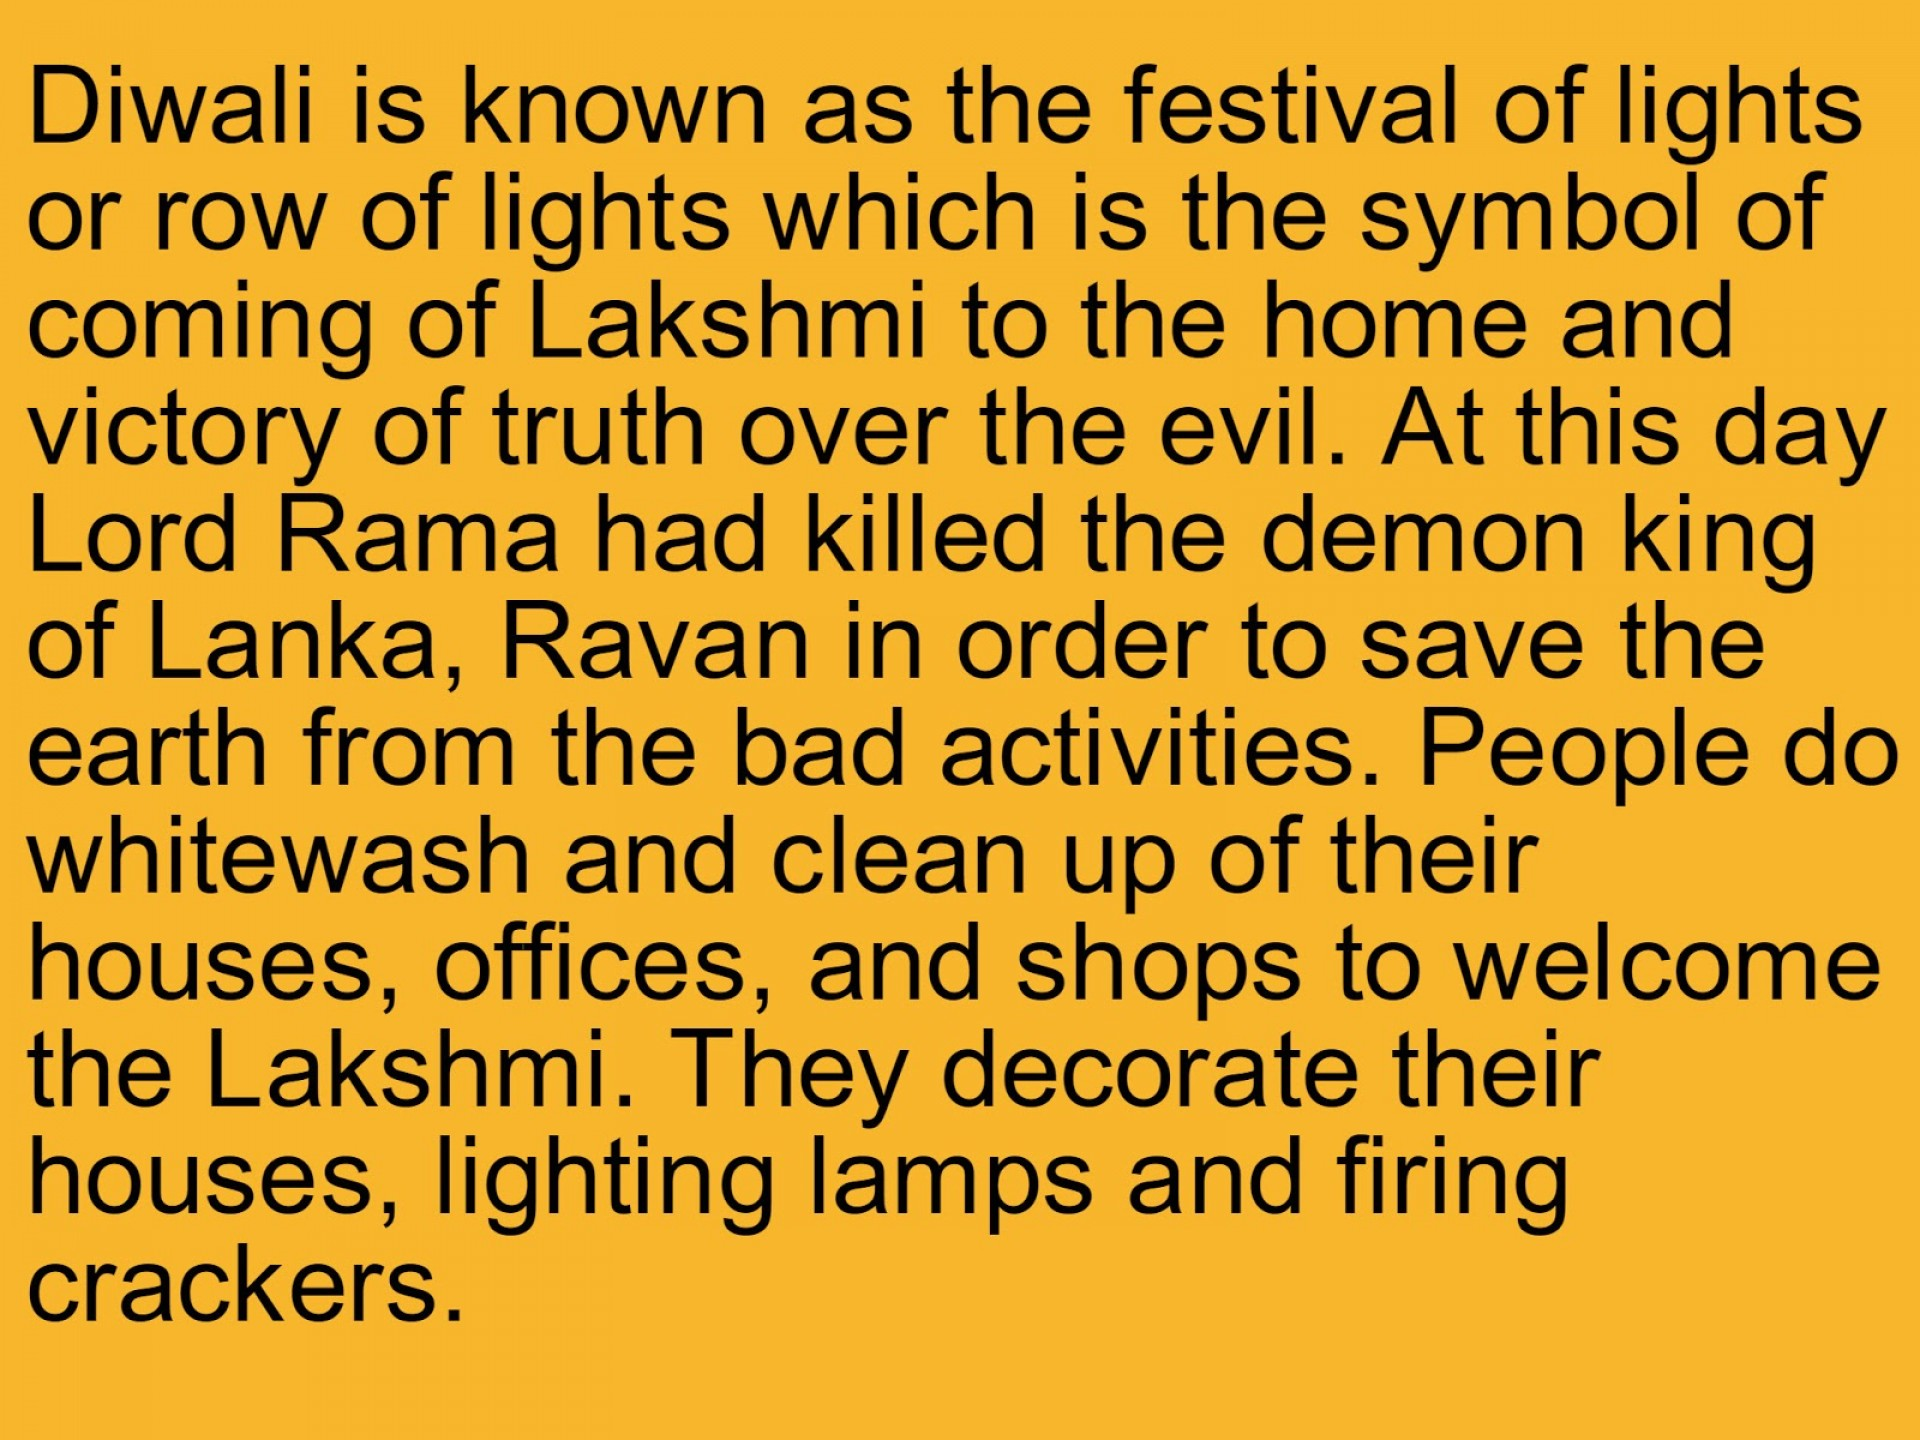 009 Simple Essay On Diwali Example Striking For Class 1 My Favourite Festival 1920